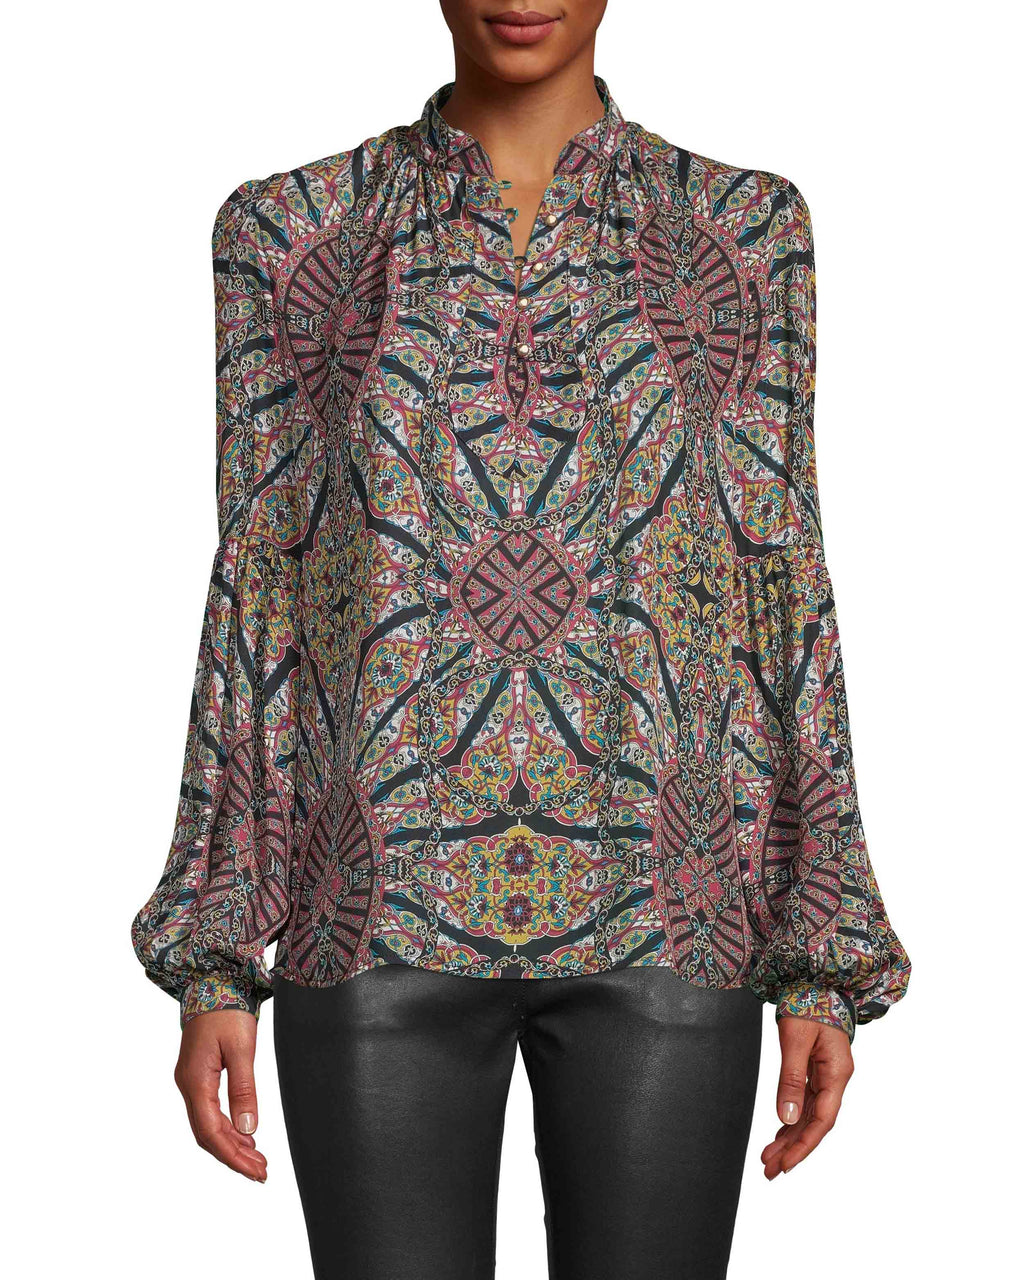 CT18085 - LABYRINTH SILK FRONT YOKE BLOUSE - tops - blouses - Designed in our new labryrinth pattern in airy silk, this blouse features an on-trend yoke neckline, gold buttons and balloon sleeves. Add 1 line break Stylist tip: Pair with anything leather - pants, jacket or skirt - for a standout fall look.